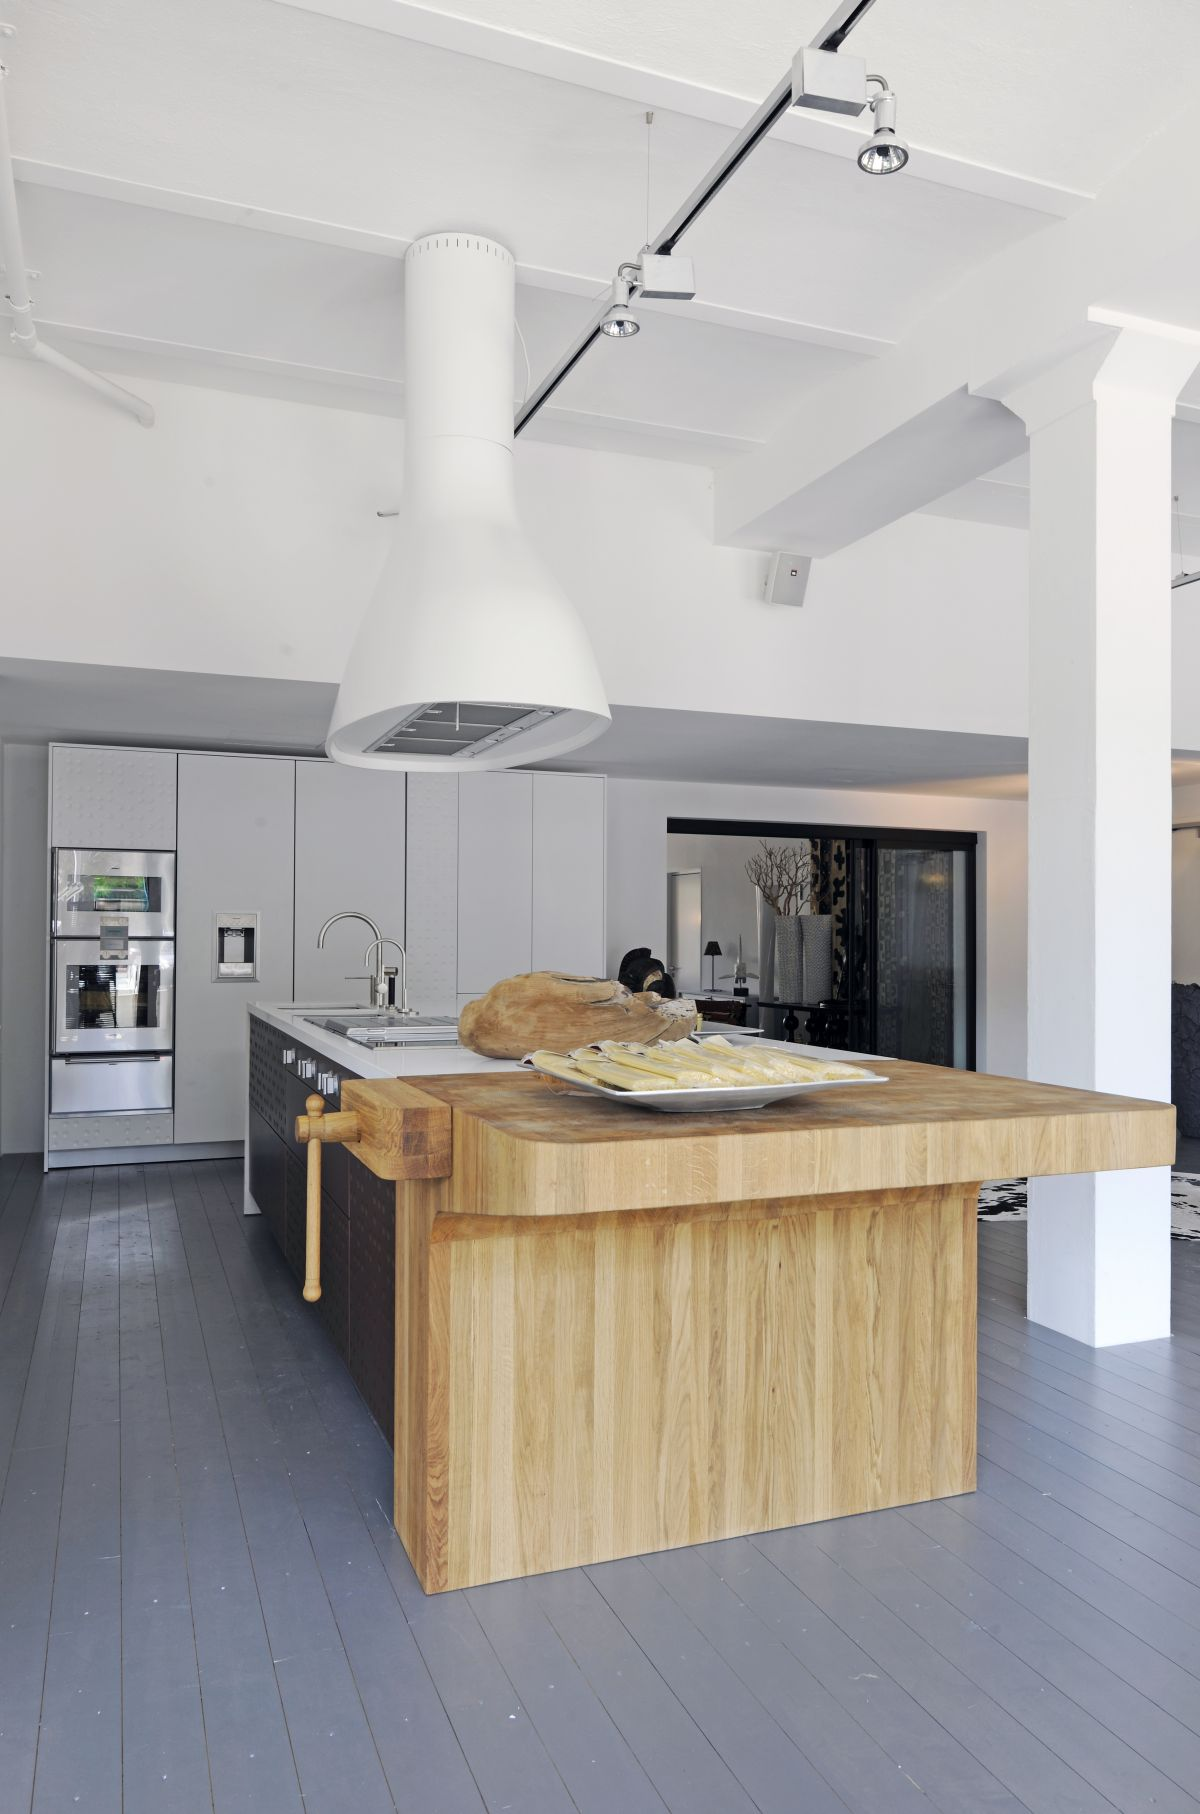 What It Costs: Most Butcher Block Countertops Cost Between $40 And $65 Per  Square Foot (including Installation), But Prices Can Vary Widely, Depending  On ...